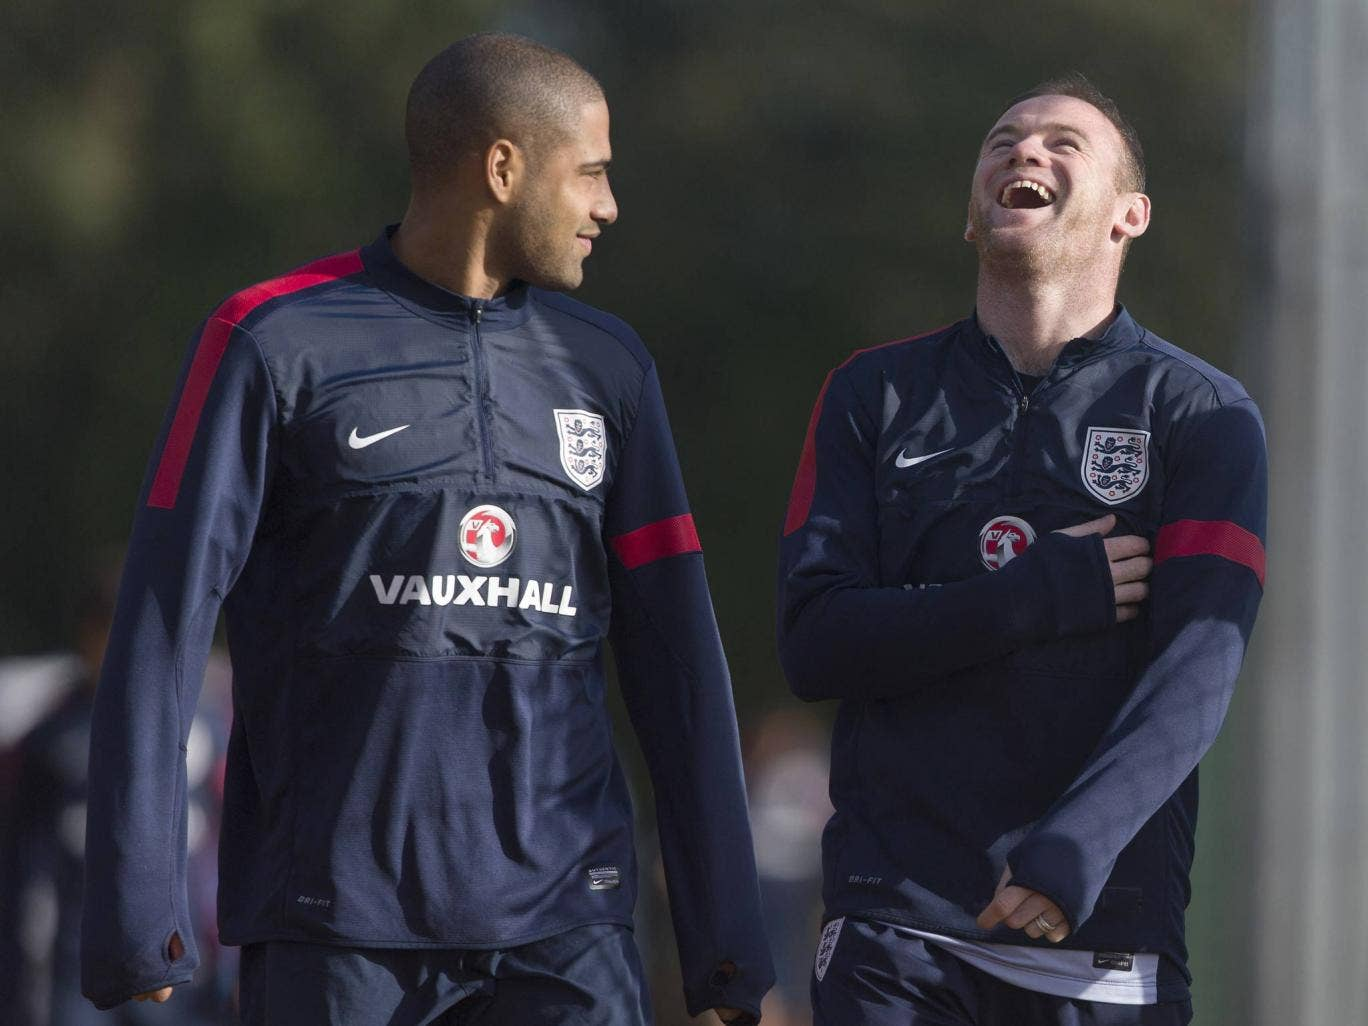 England footballers Glen Johnson (L) and Wayne Rooney (R) share a light moment as they arrive for a training session at Arsenal's training ground